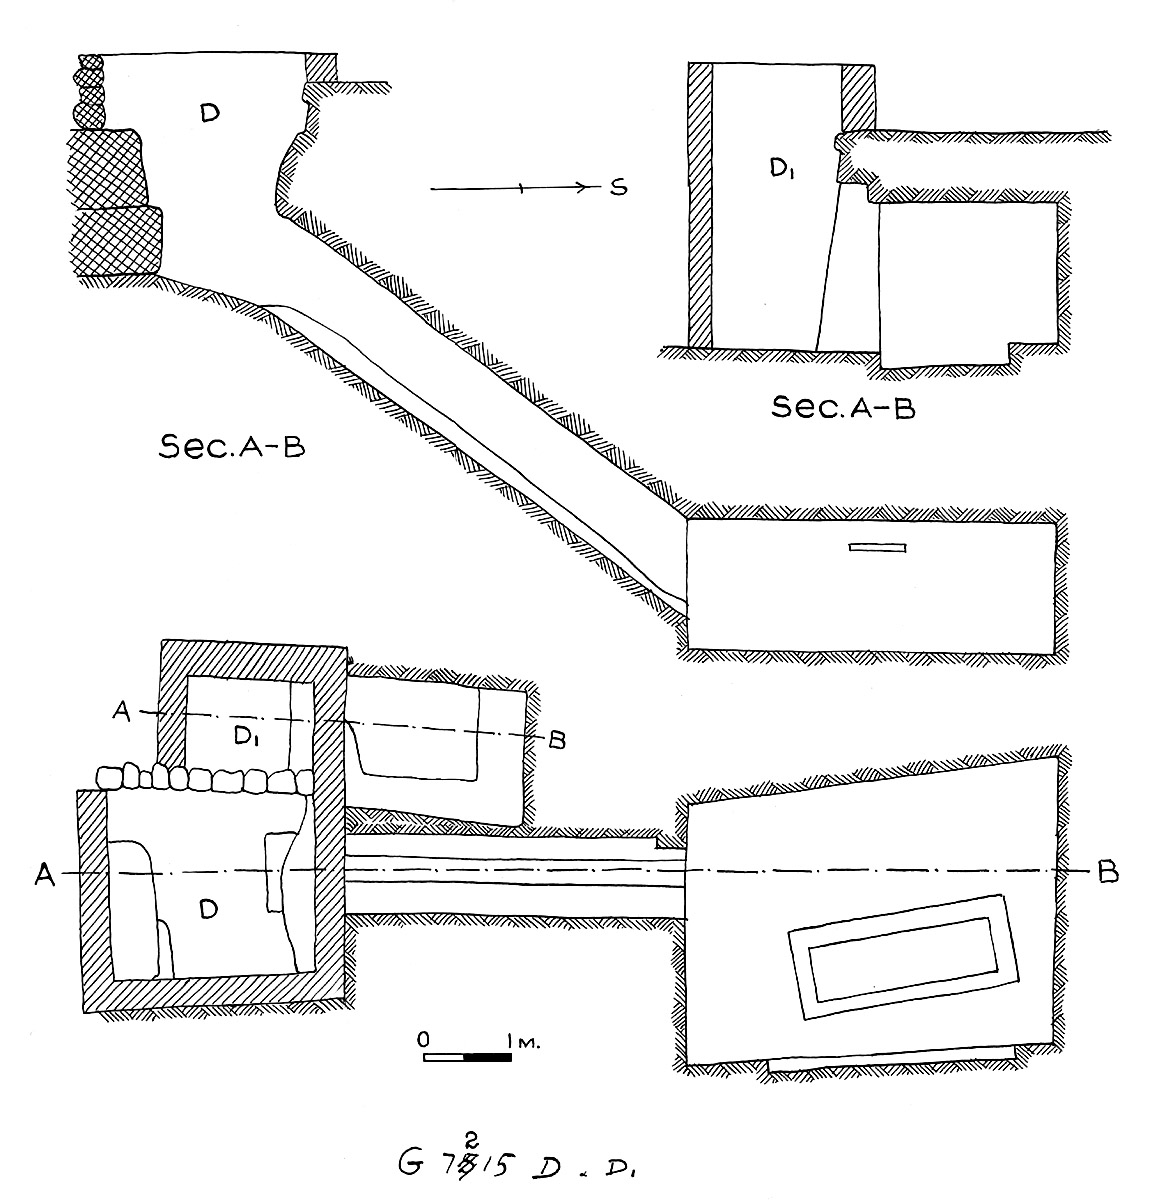 Maps and plans: G 7215, Shaft D and D1